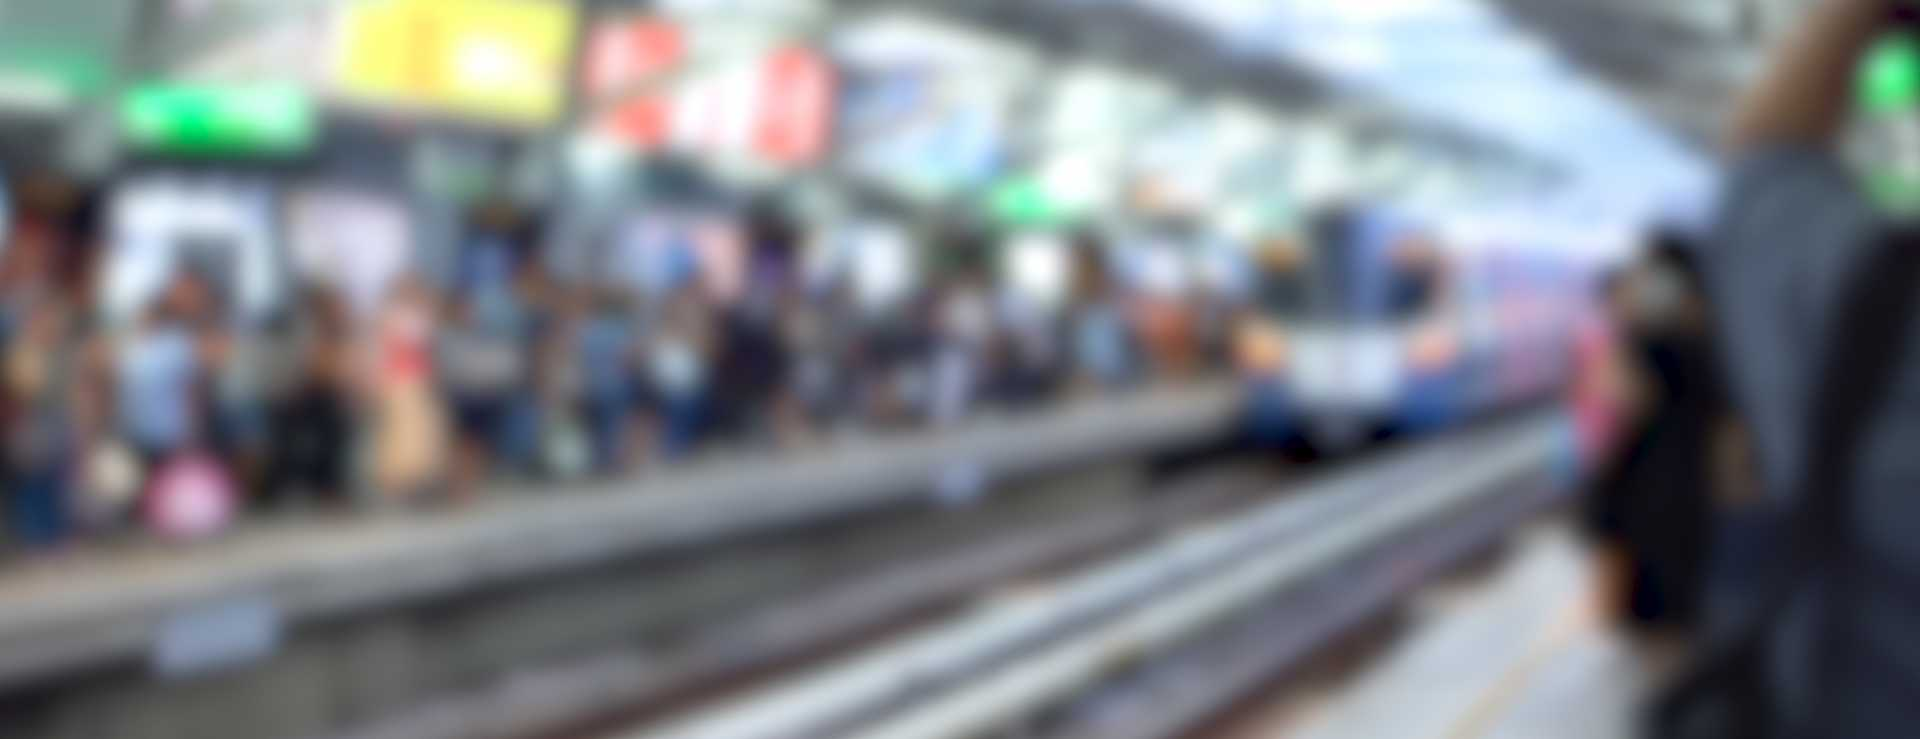 Out of Focus - Crowd of Commuters Waiting For Train - image courtesy of Depositphotos.